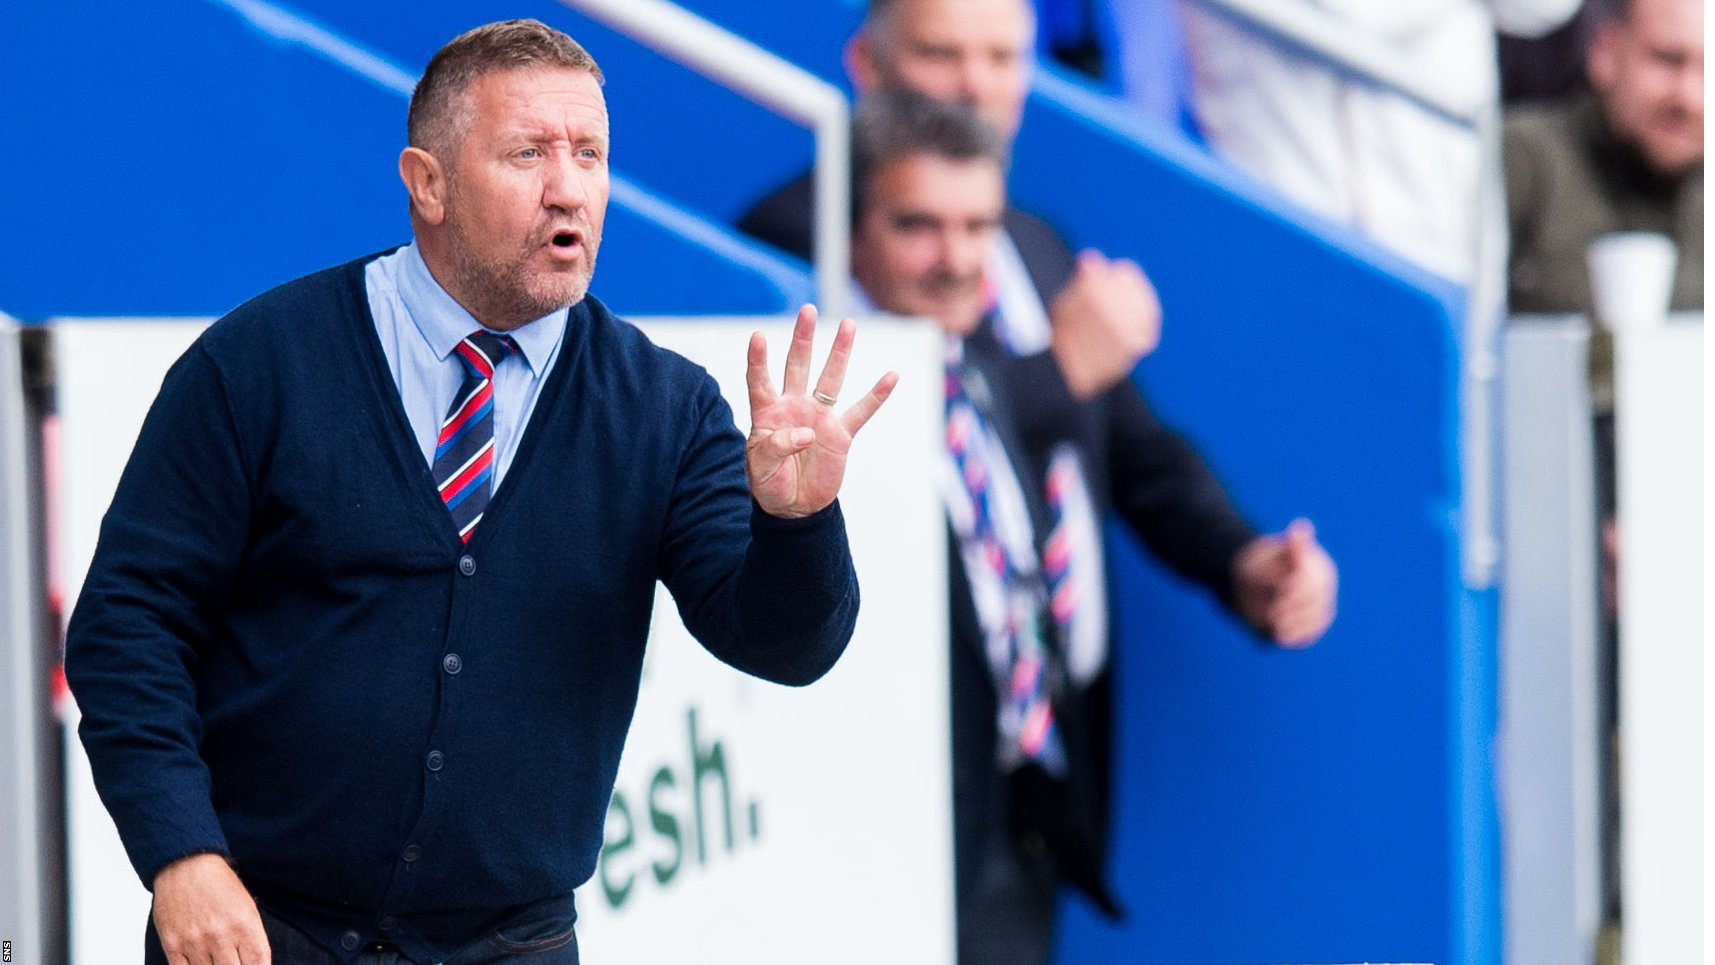 Inverness 3-2 Partick Thistle: Jags rally but Inverness claim victory